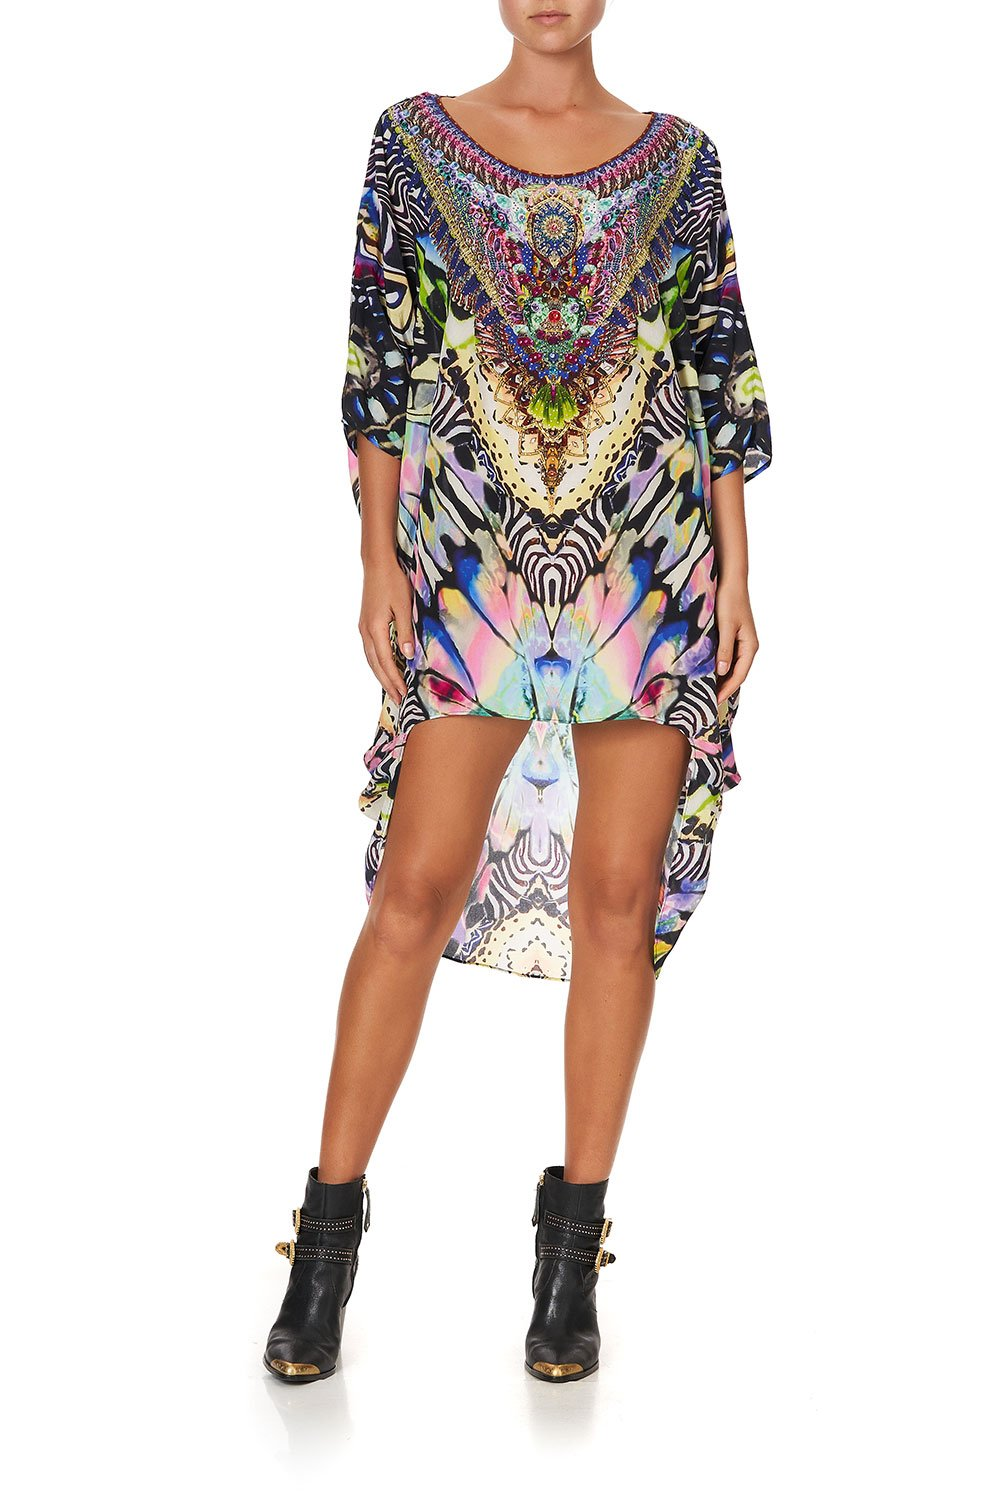 SCOOP BACK HEM DRESS TRANCE TEMPTATION